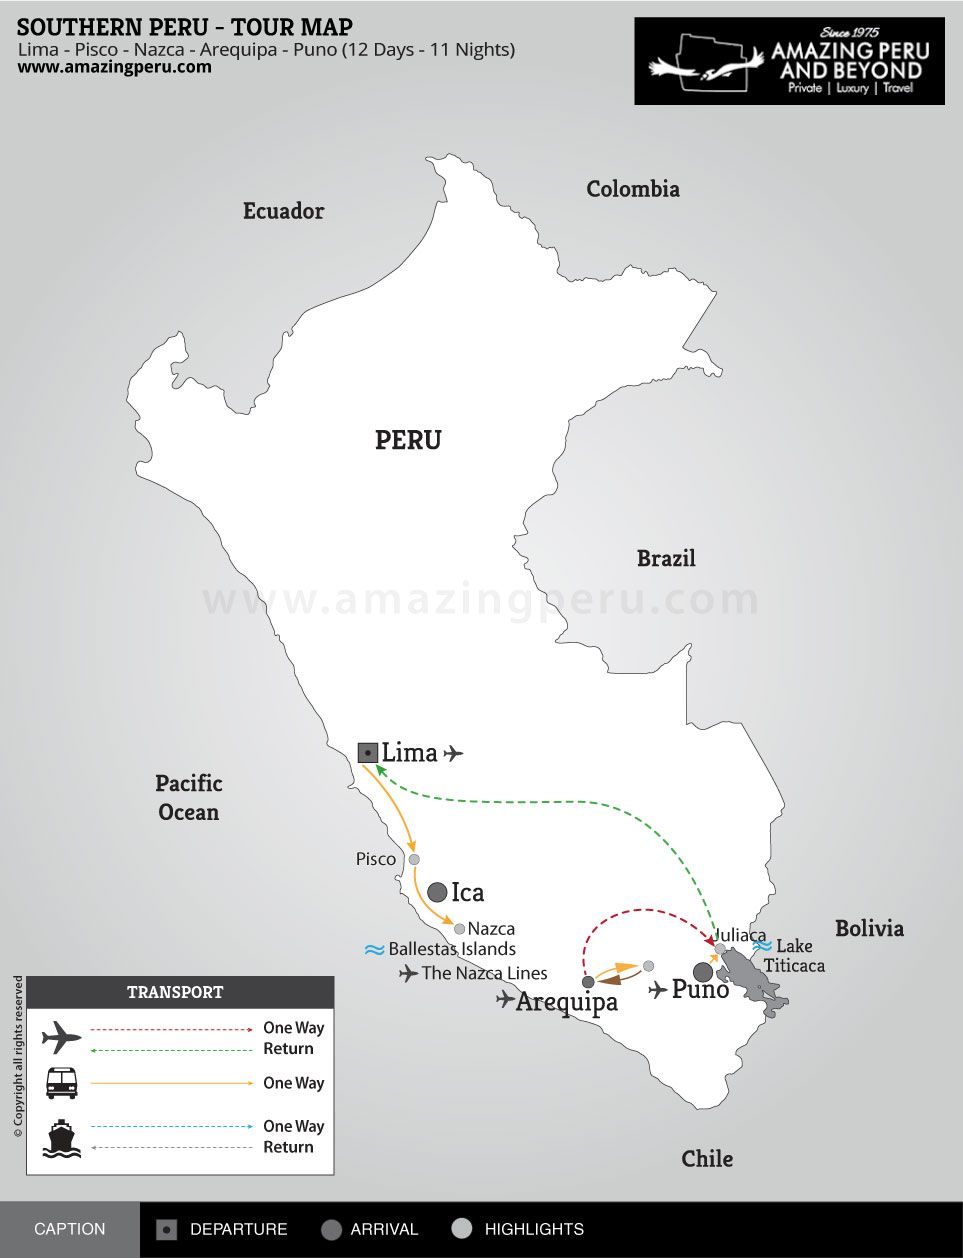 Southern Peru - 12 days / 11 nights.